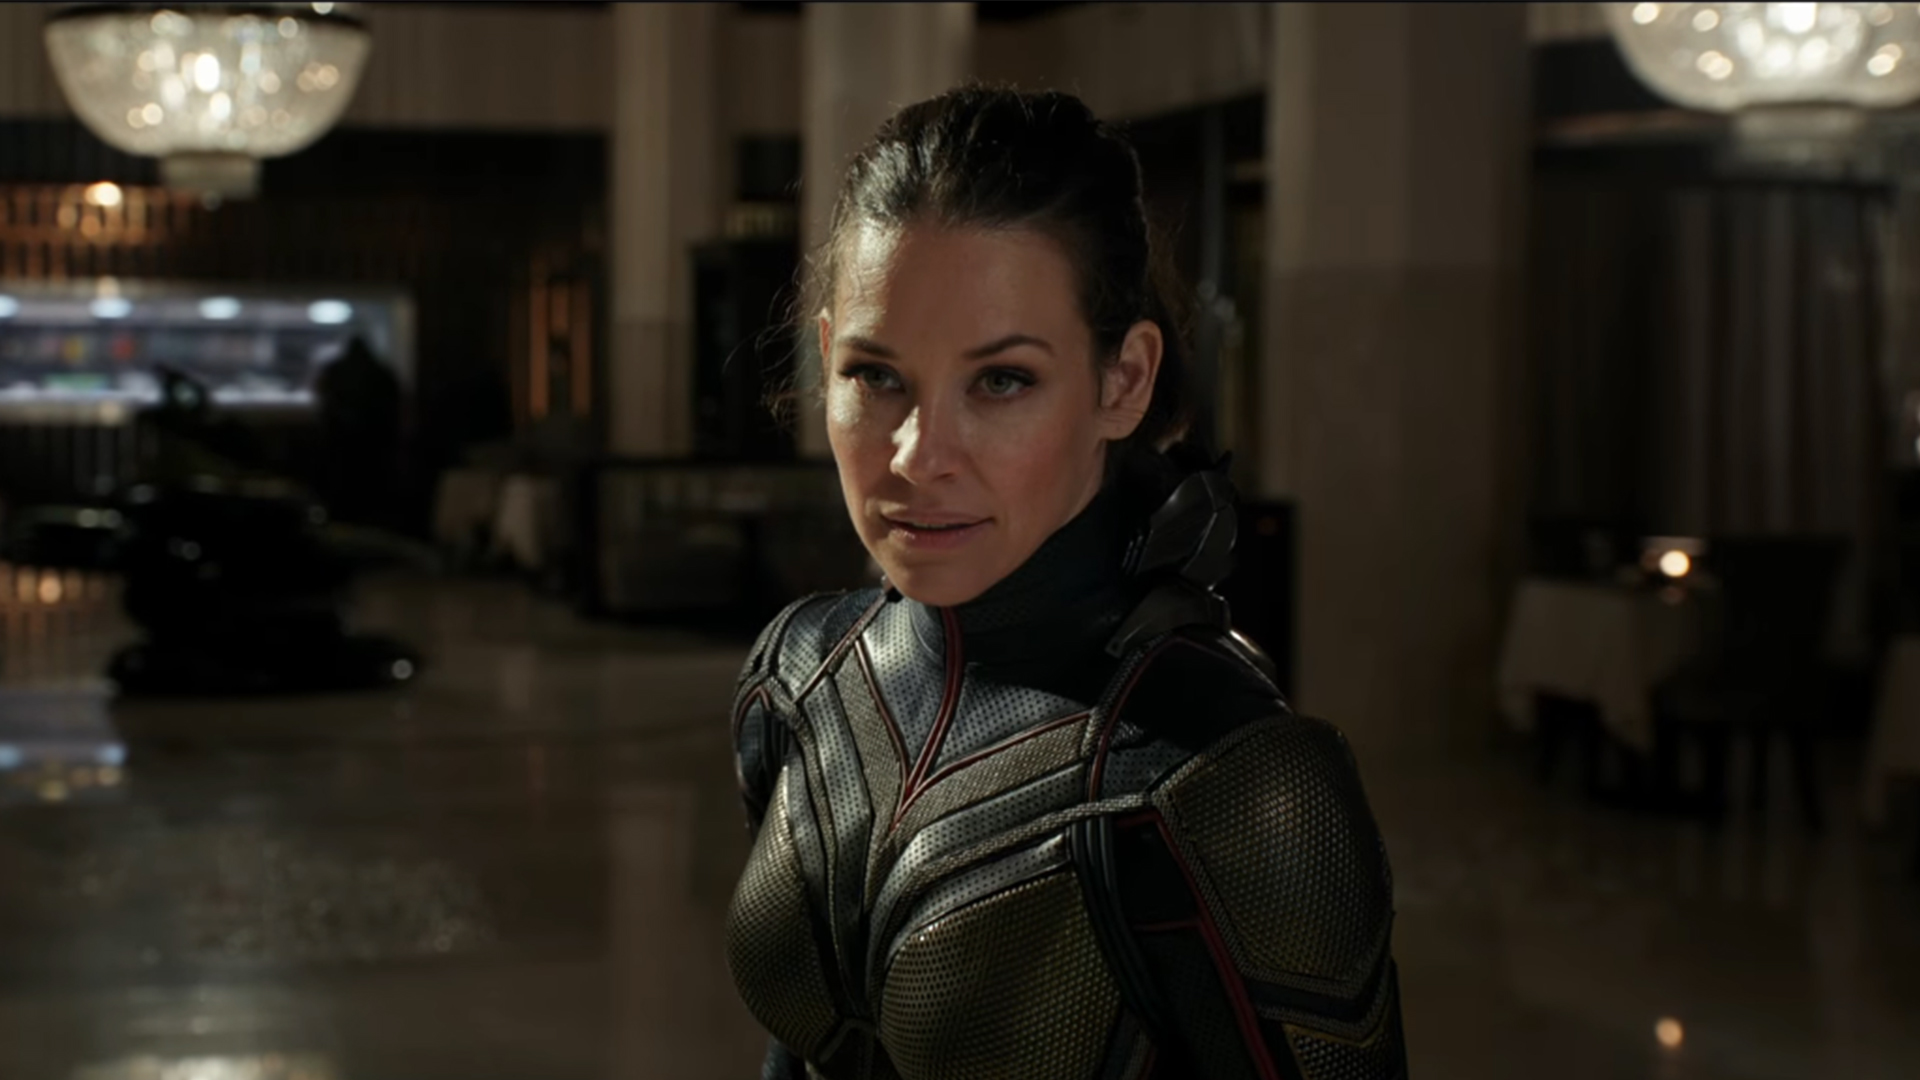 Ant-man and the Wasp, Avengers 4, Ant-Man & The Wasp, Star Wars